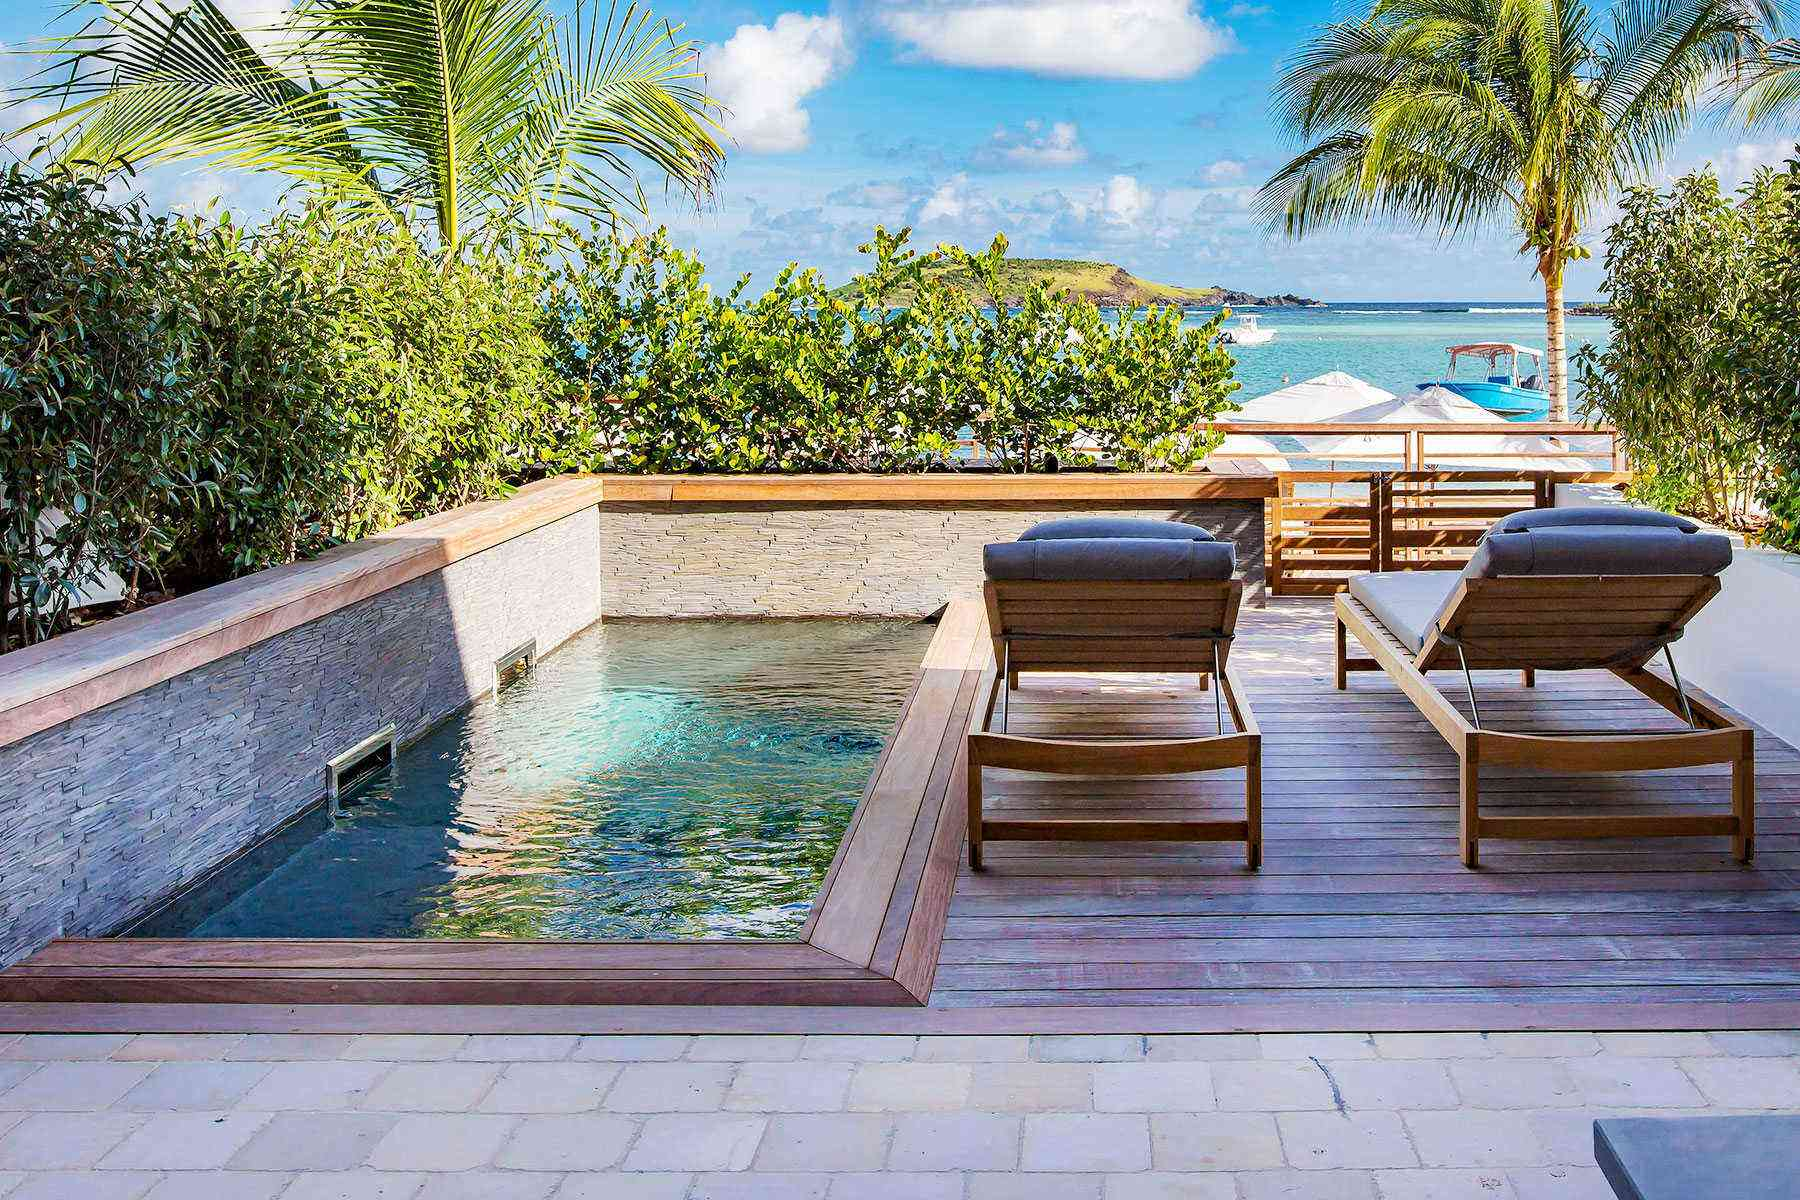 Jacuzzi Pool Was Ist Das The 23 Most Beautiful Hotel Plunge Pools Around The World Fodors